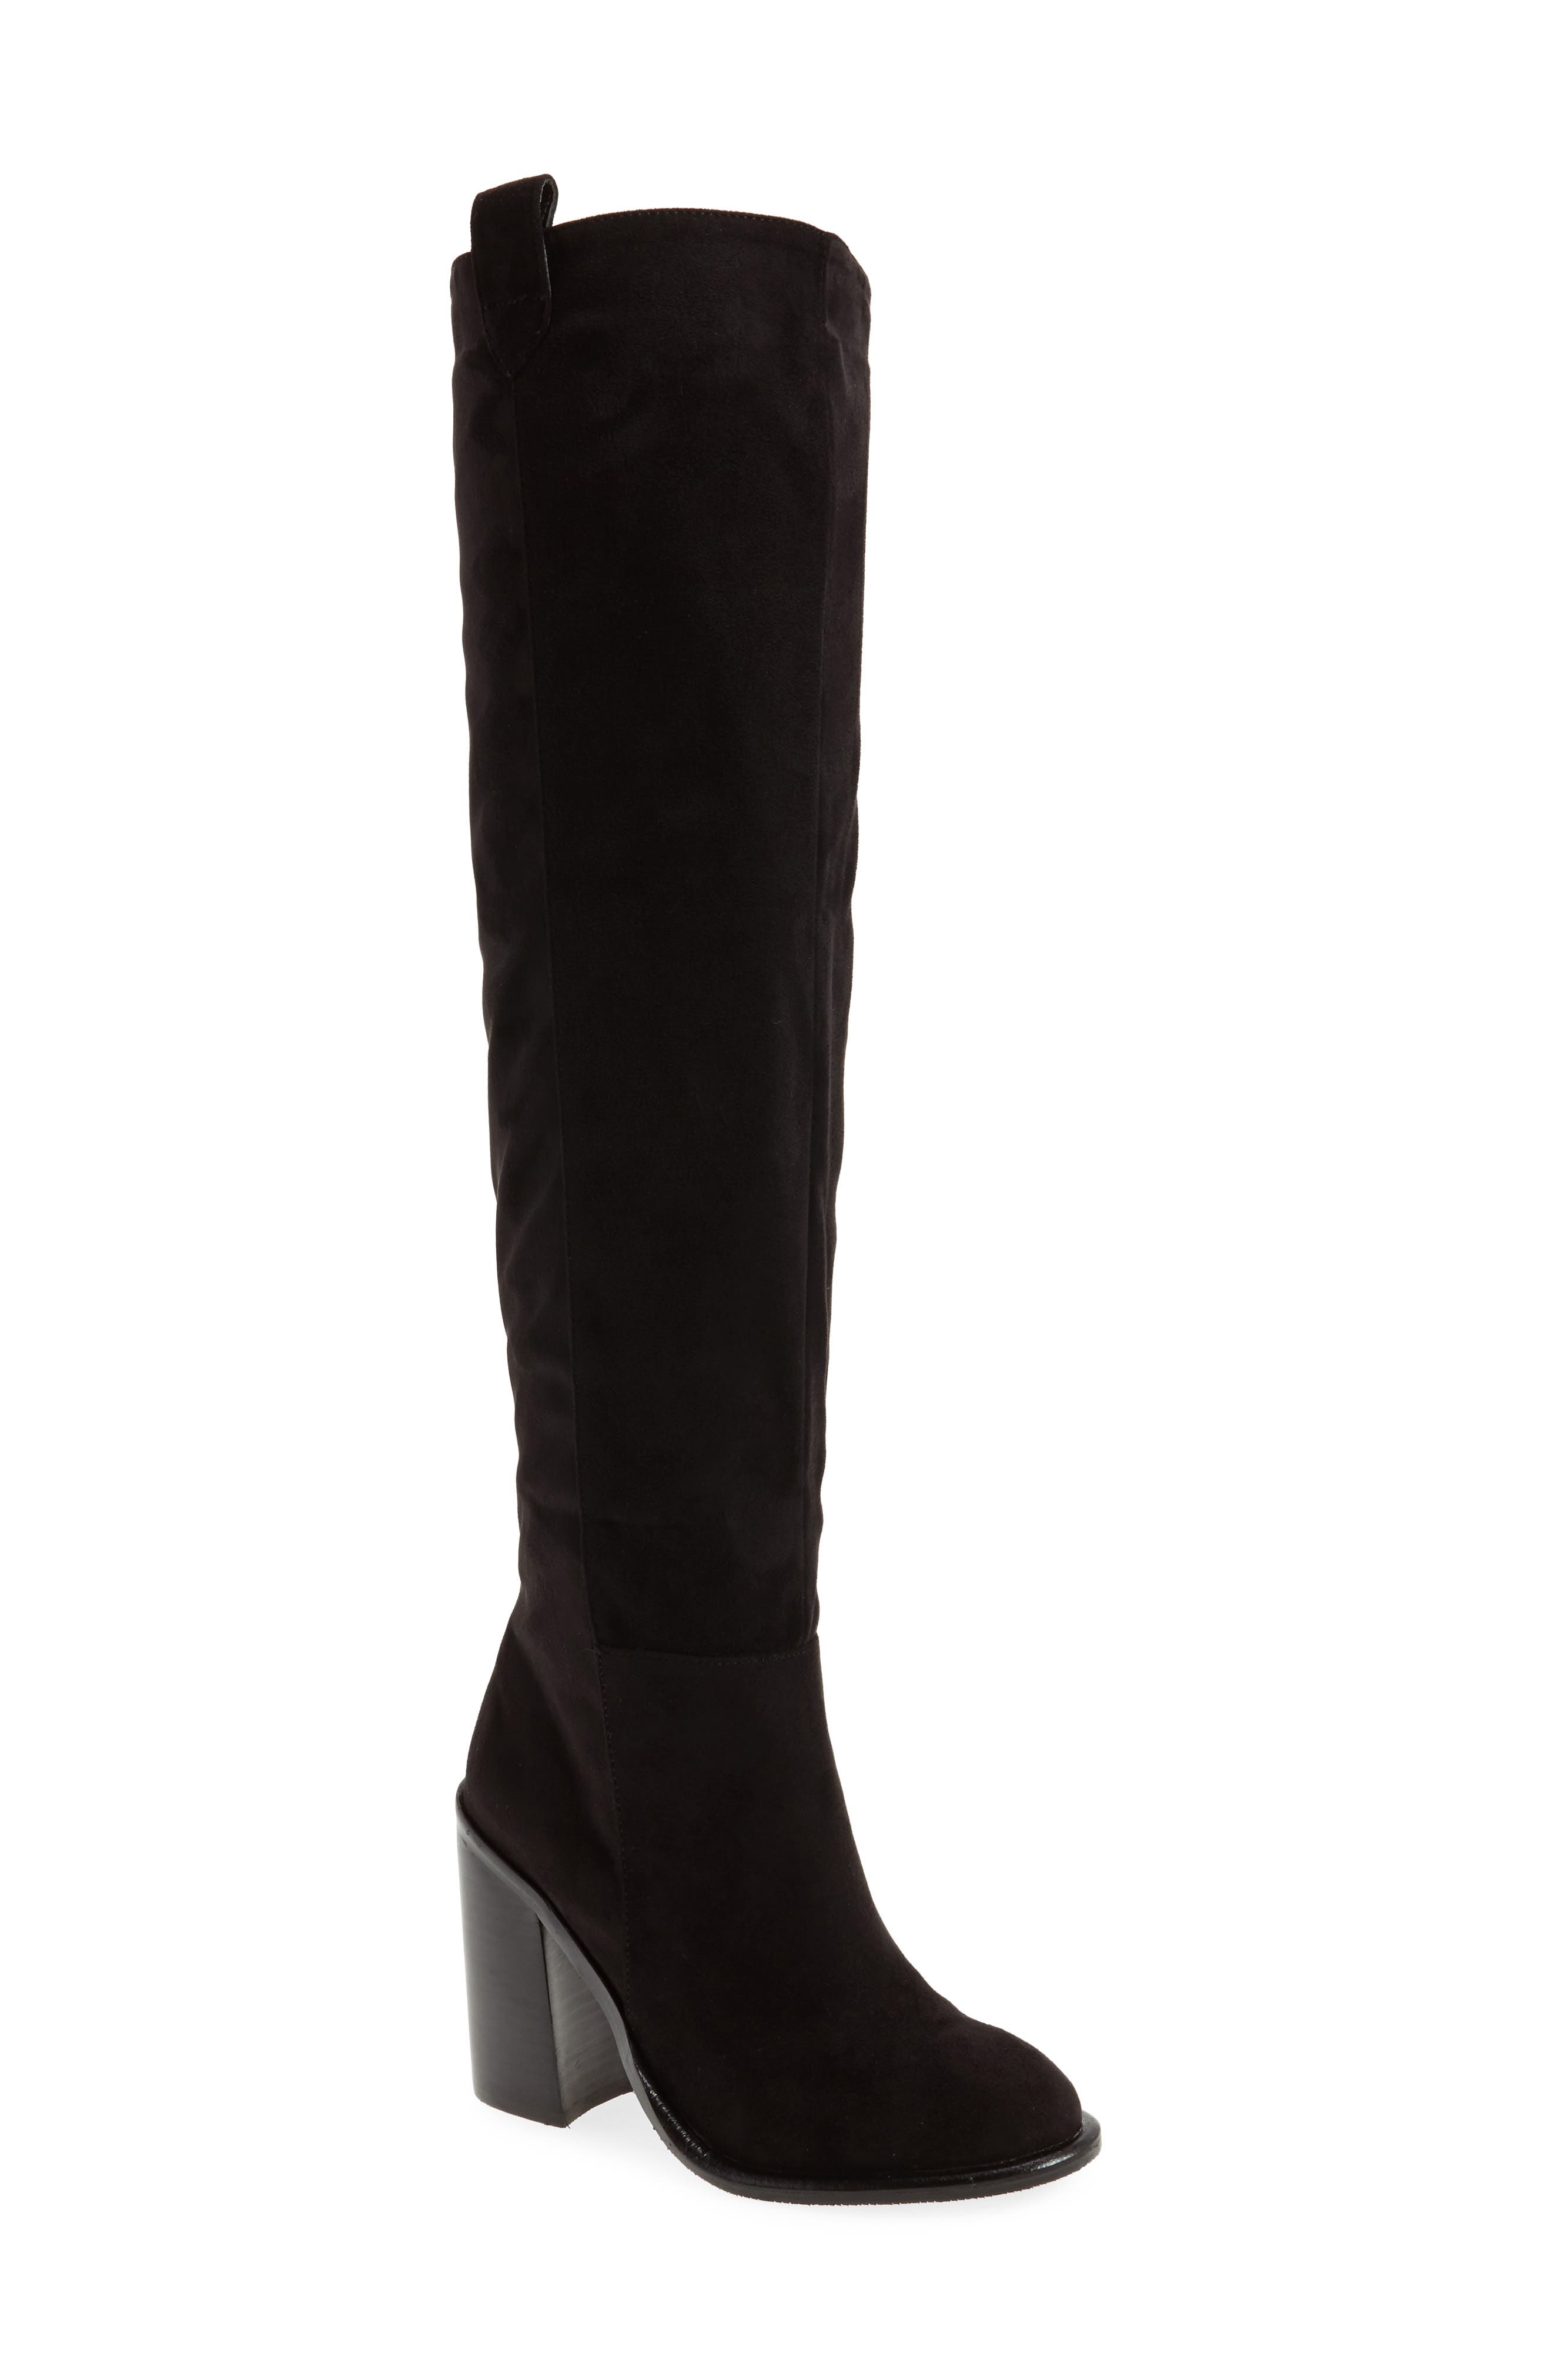 Nate Over the Knee Boot,                         Main,                         color,